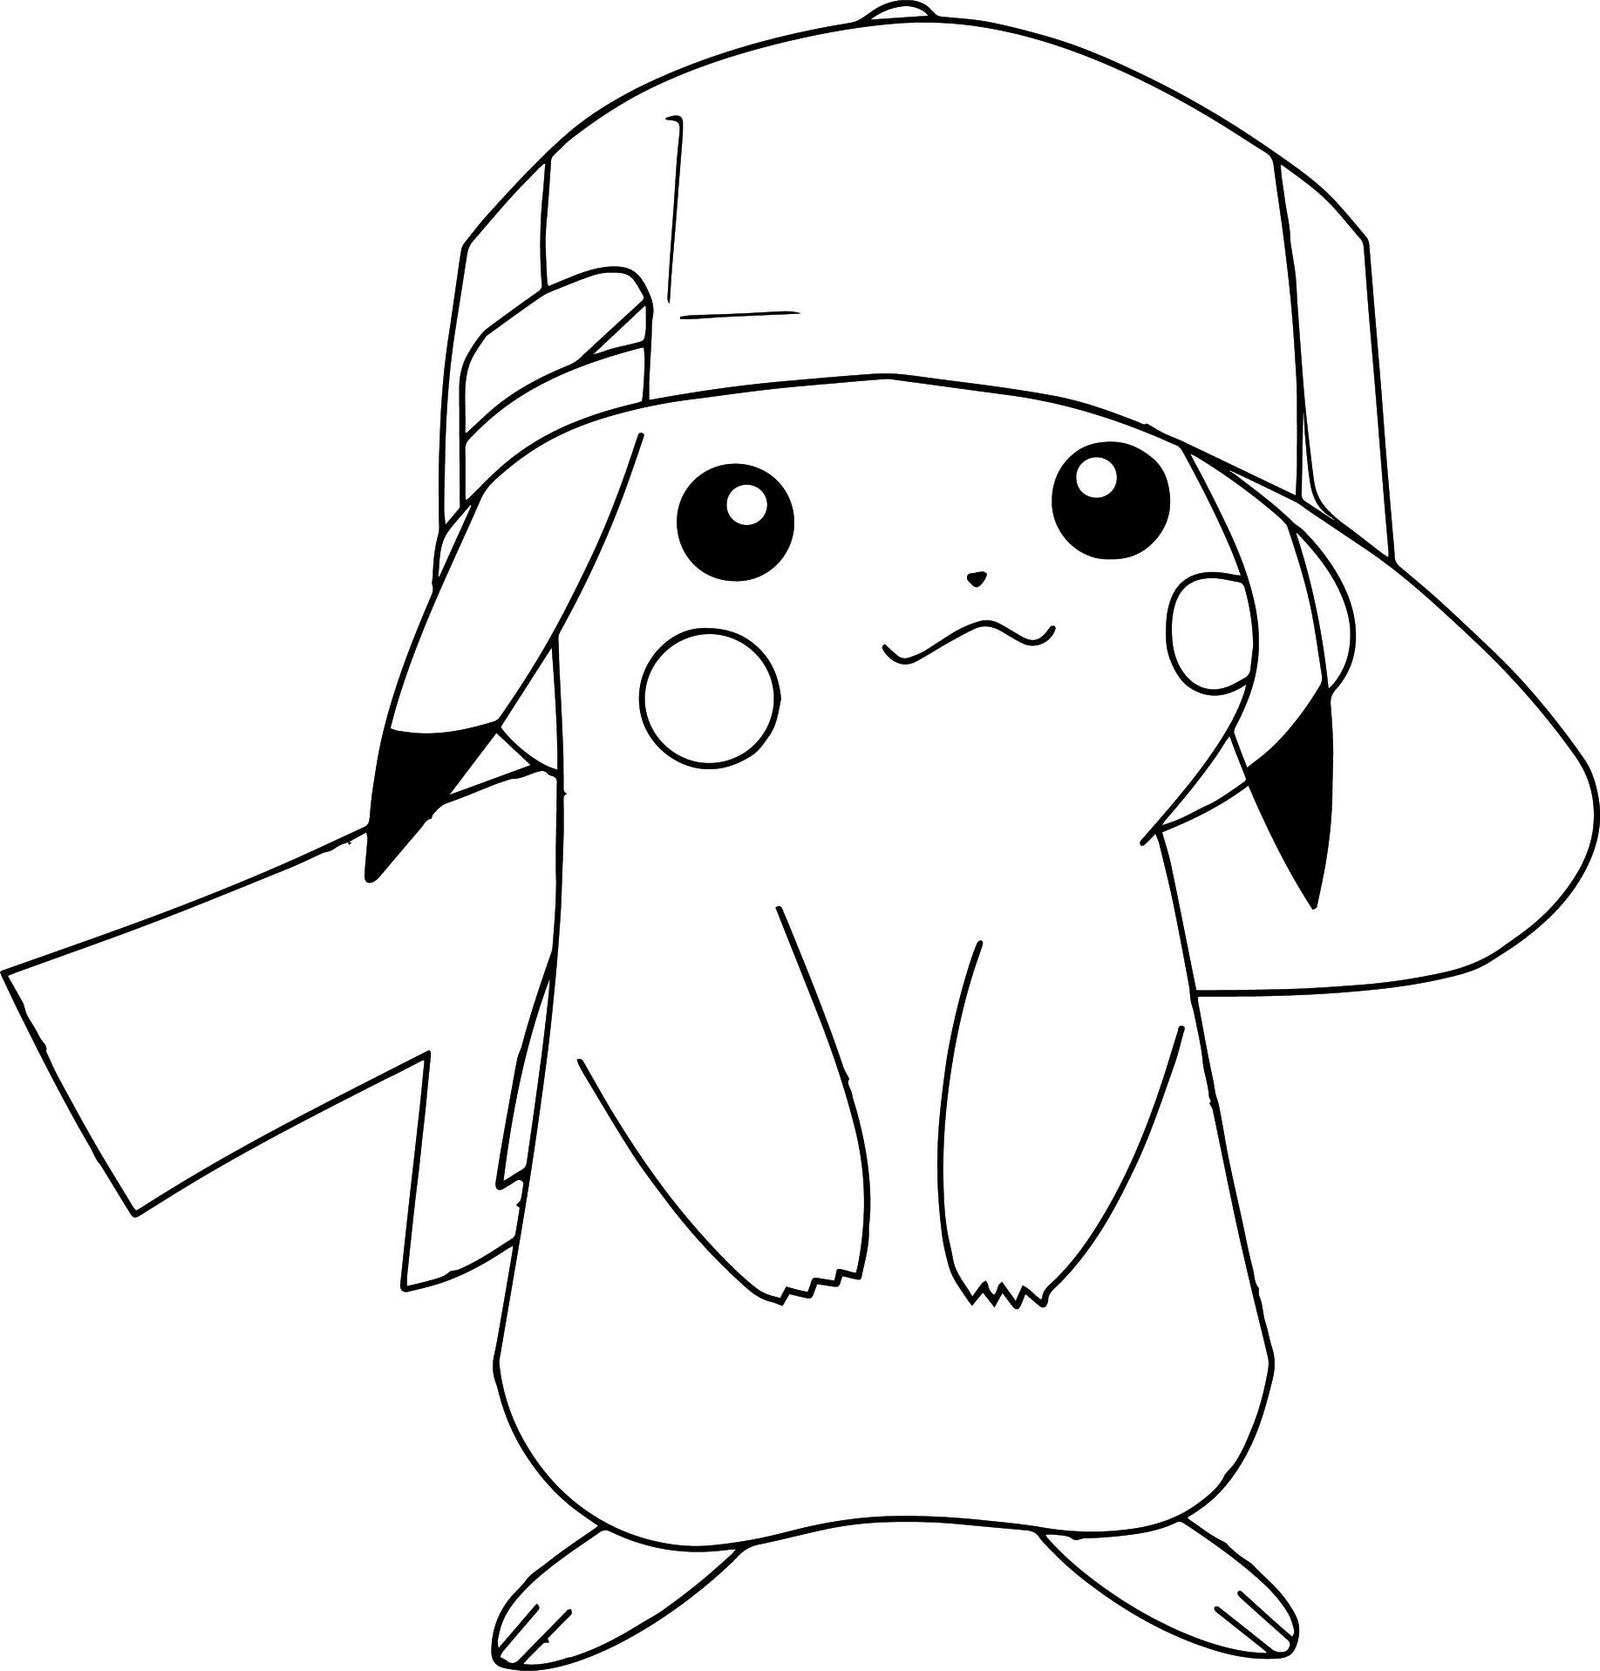 Hat Ash Ketchum Pokemon Coloring Page